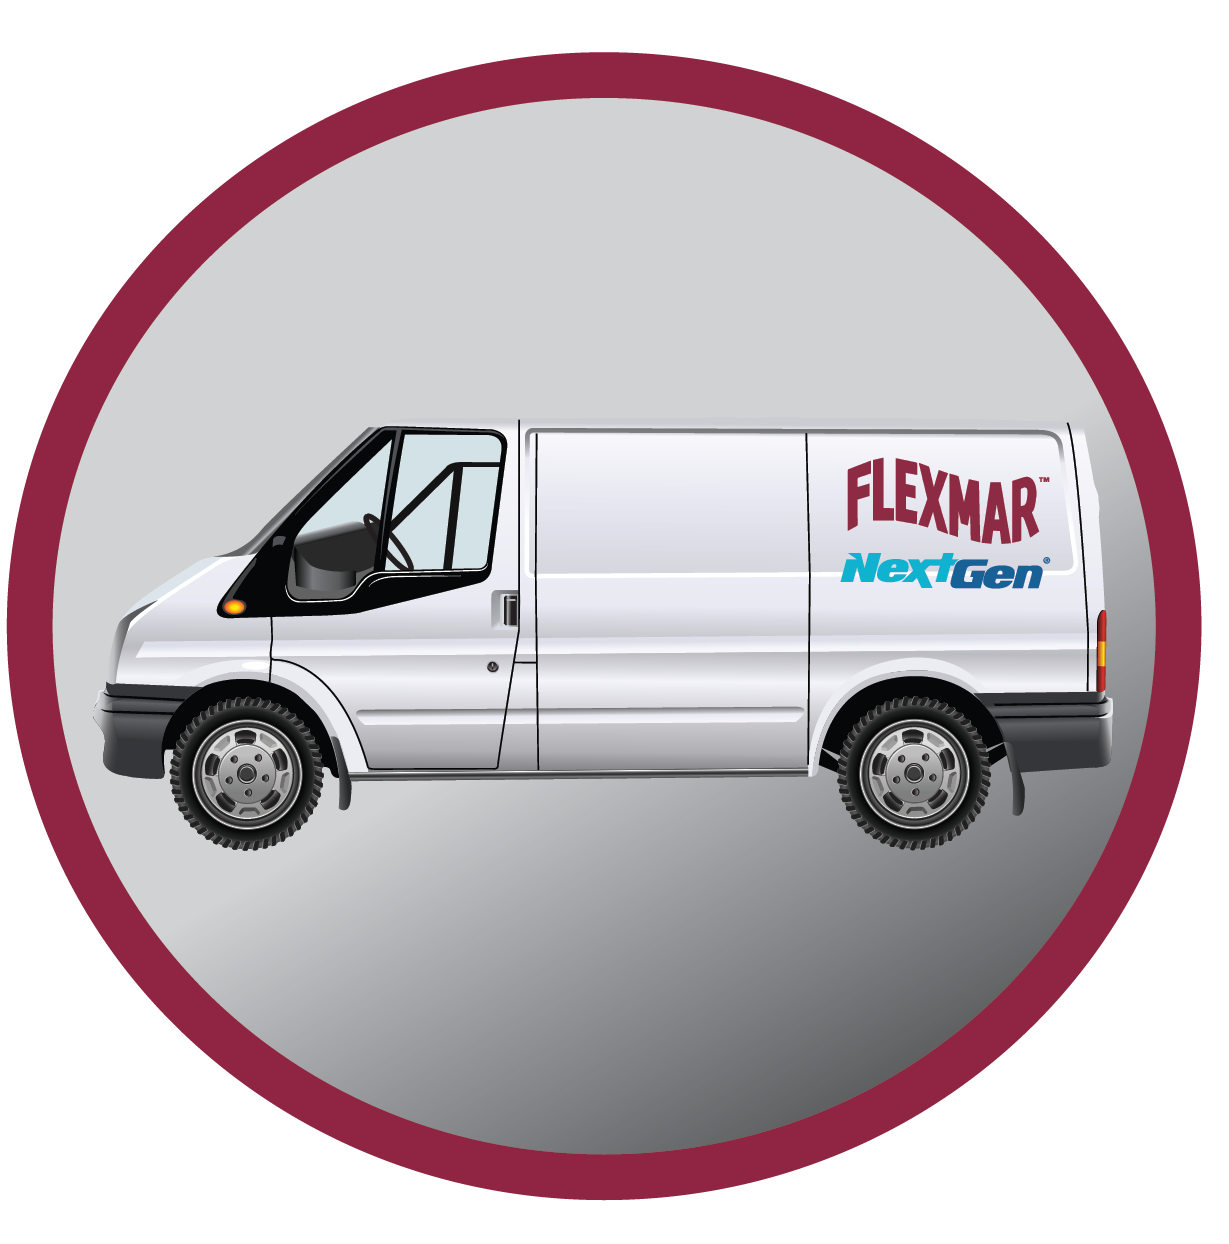 flexmar-branding-icon-08